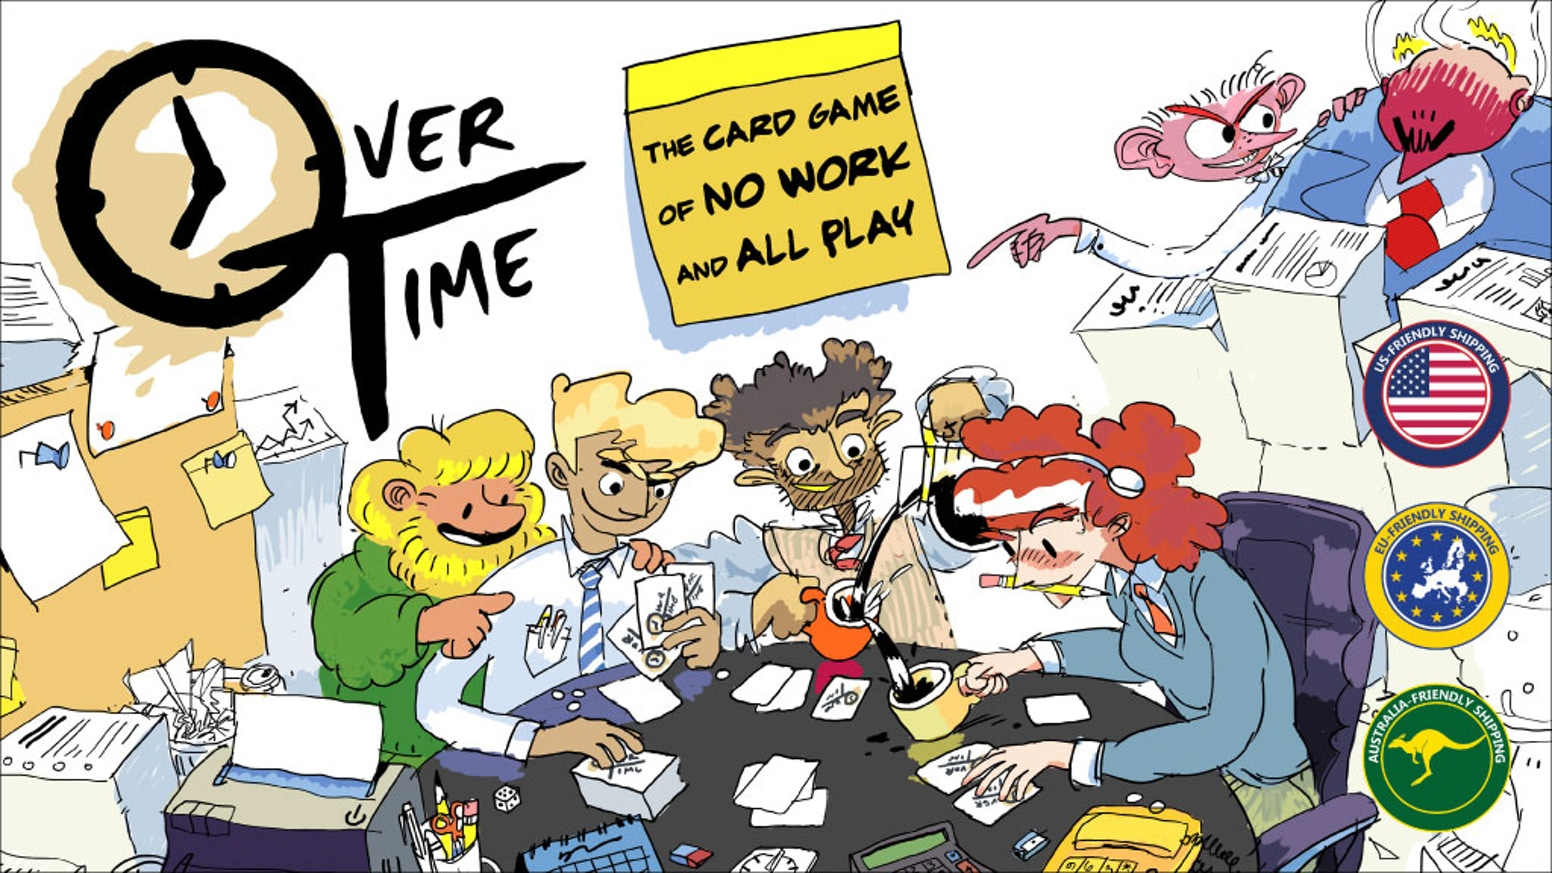 Overtime! The card game of no work and all play! by Dažbog ...